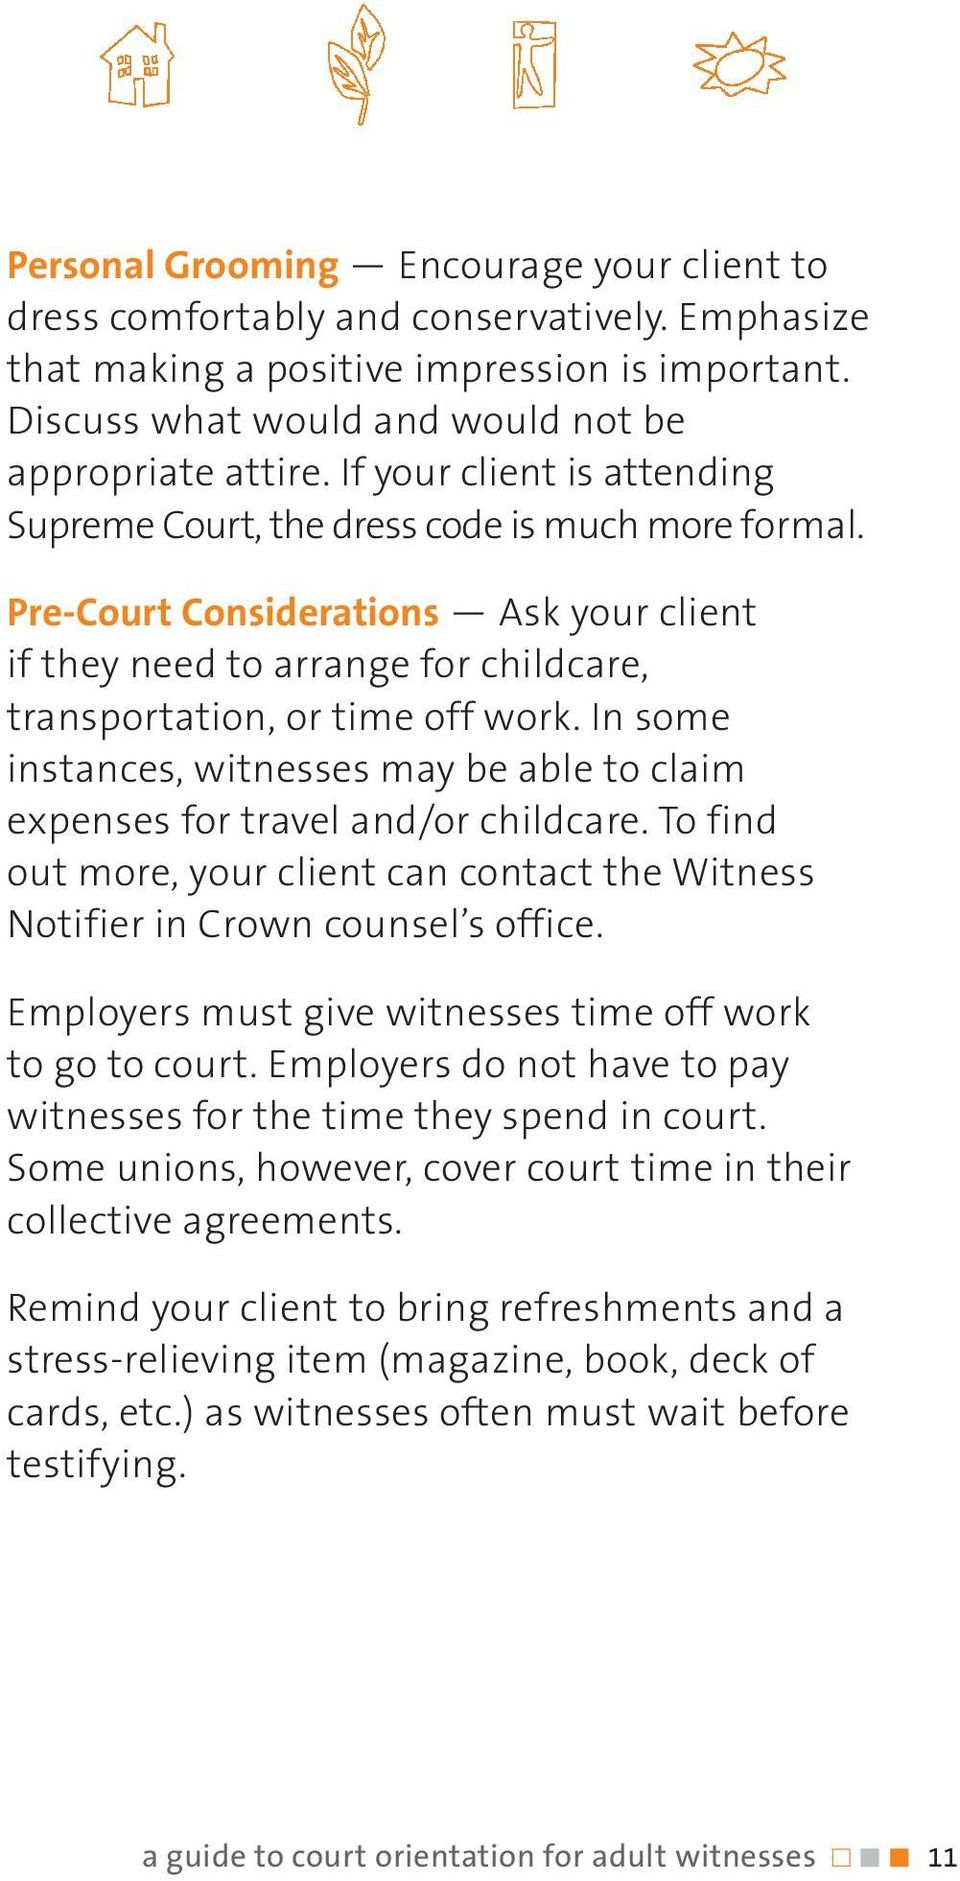 In some instances, witnesses may be able to claim expenses for travel and/or childcare. To find out more, your client can contact the Witness Notifier in Crown counsel s office.